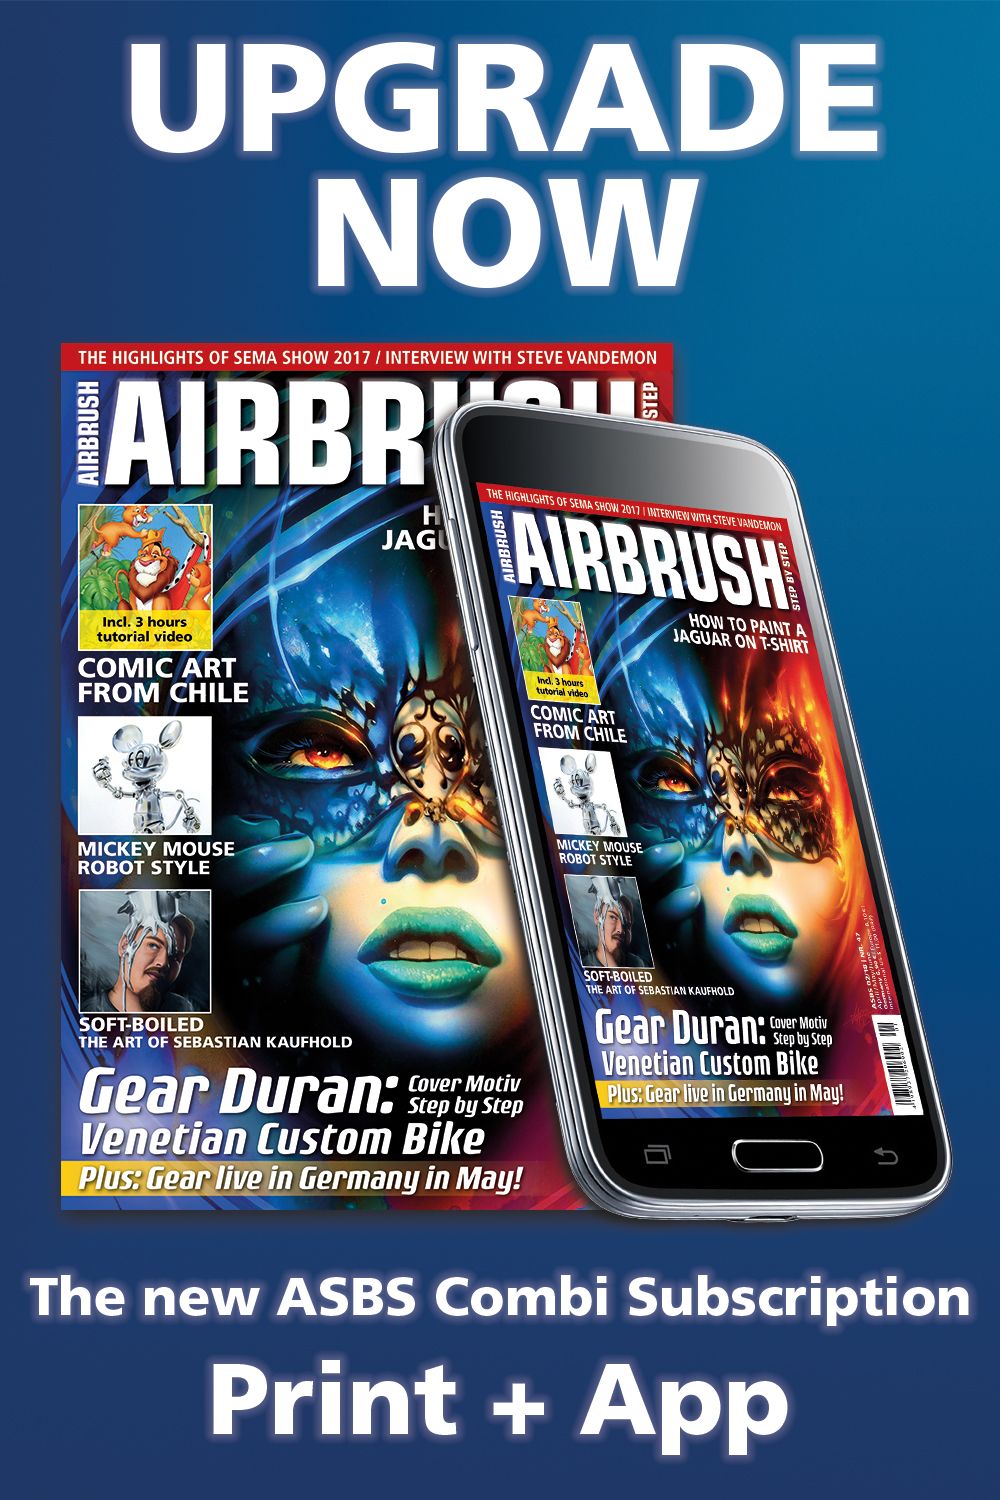 Upgrade now for the ASBS Combi subscription Print + App